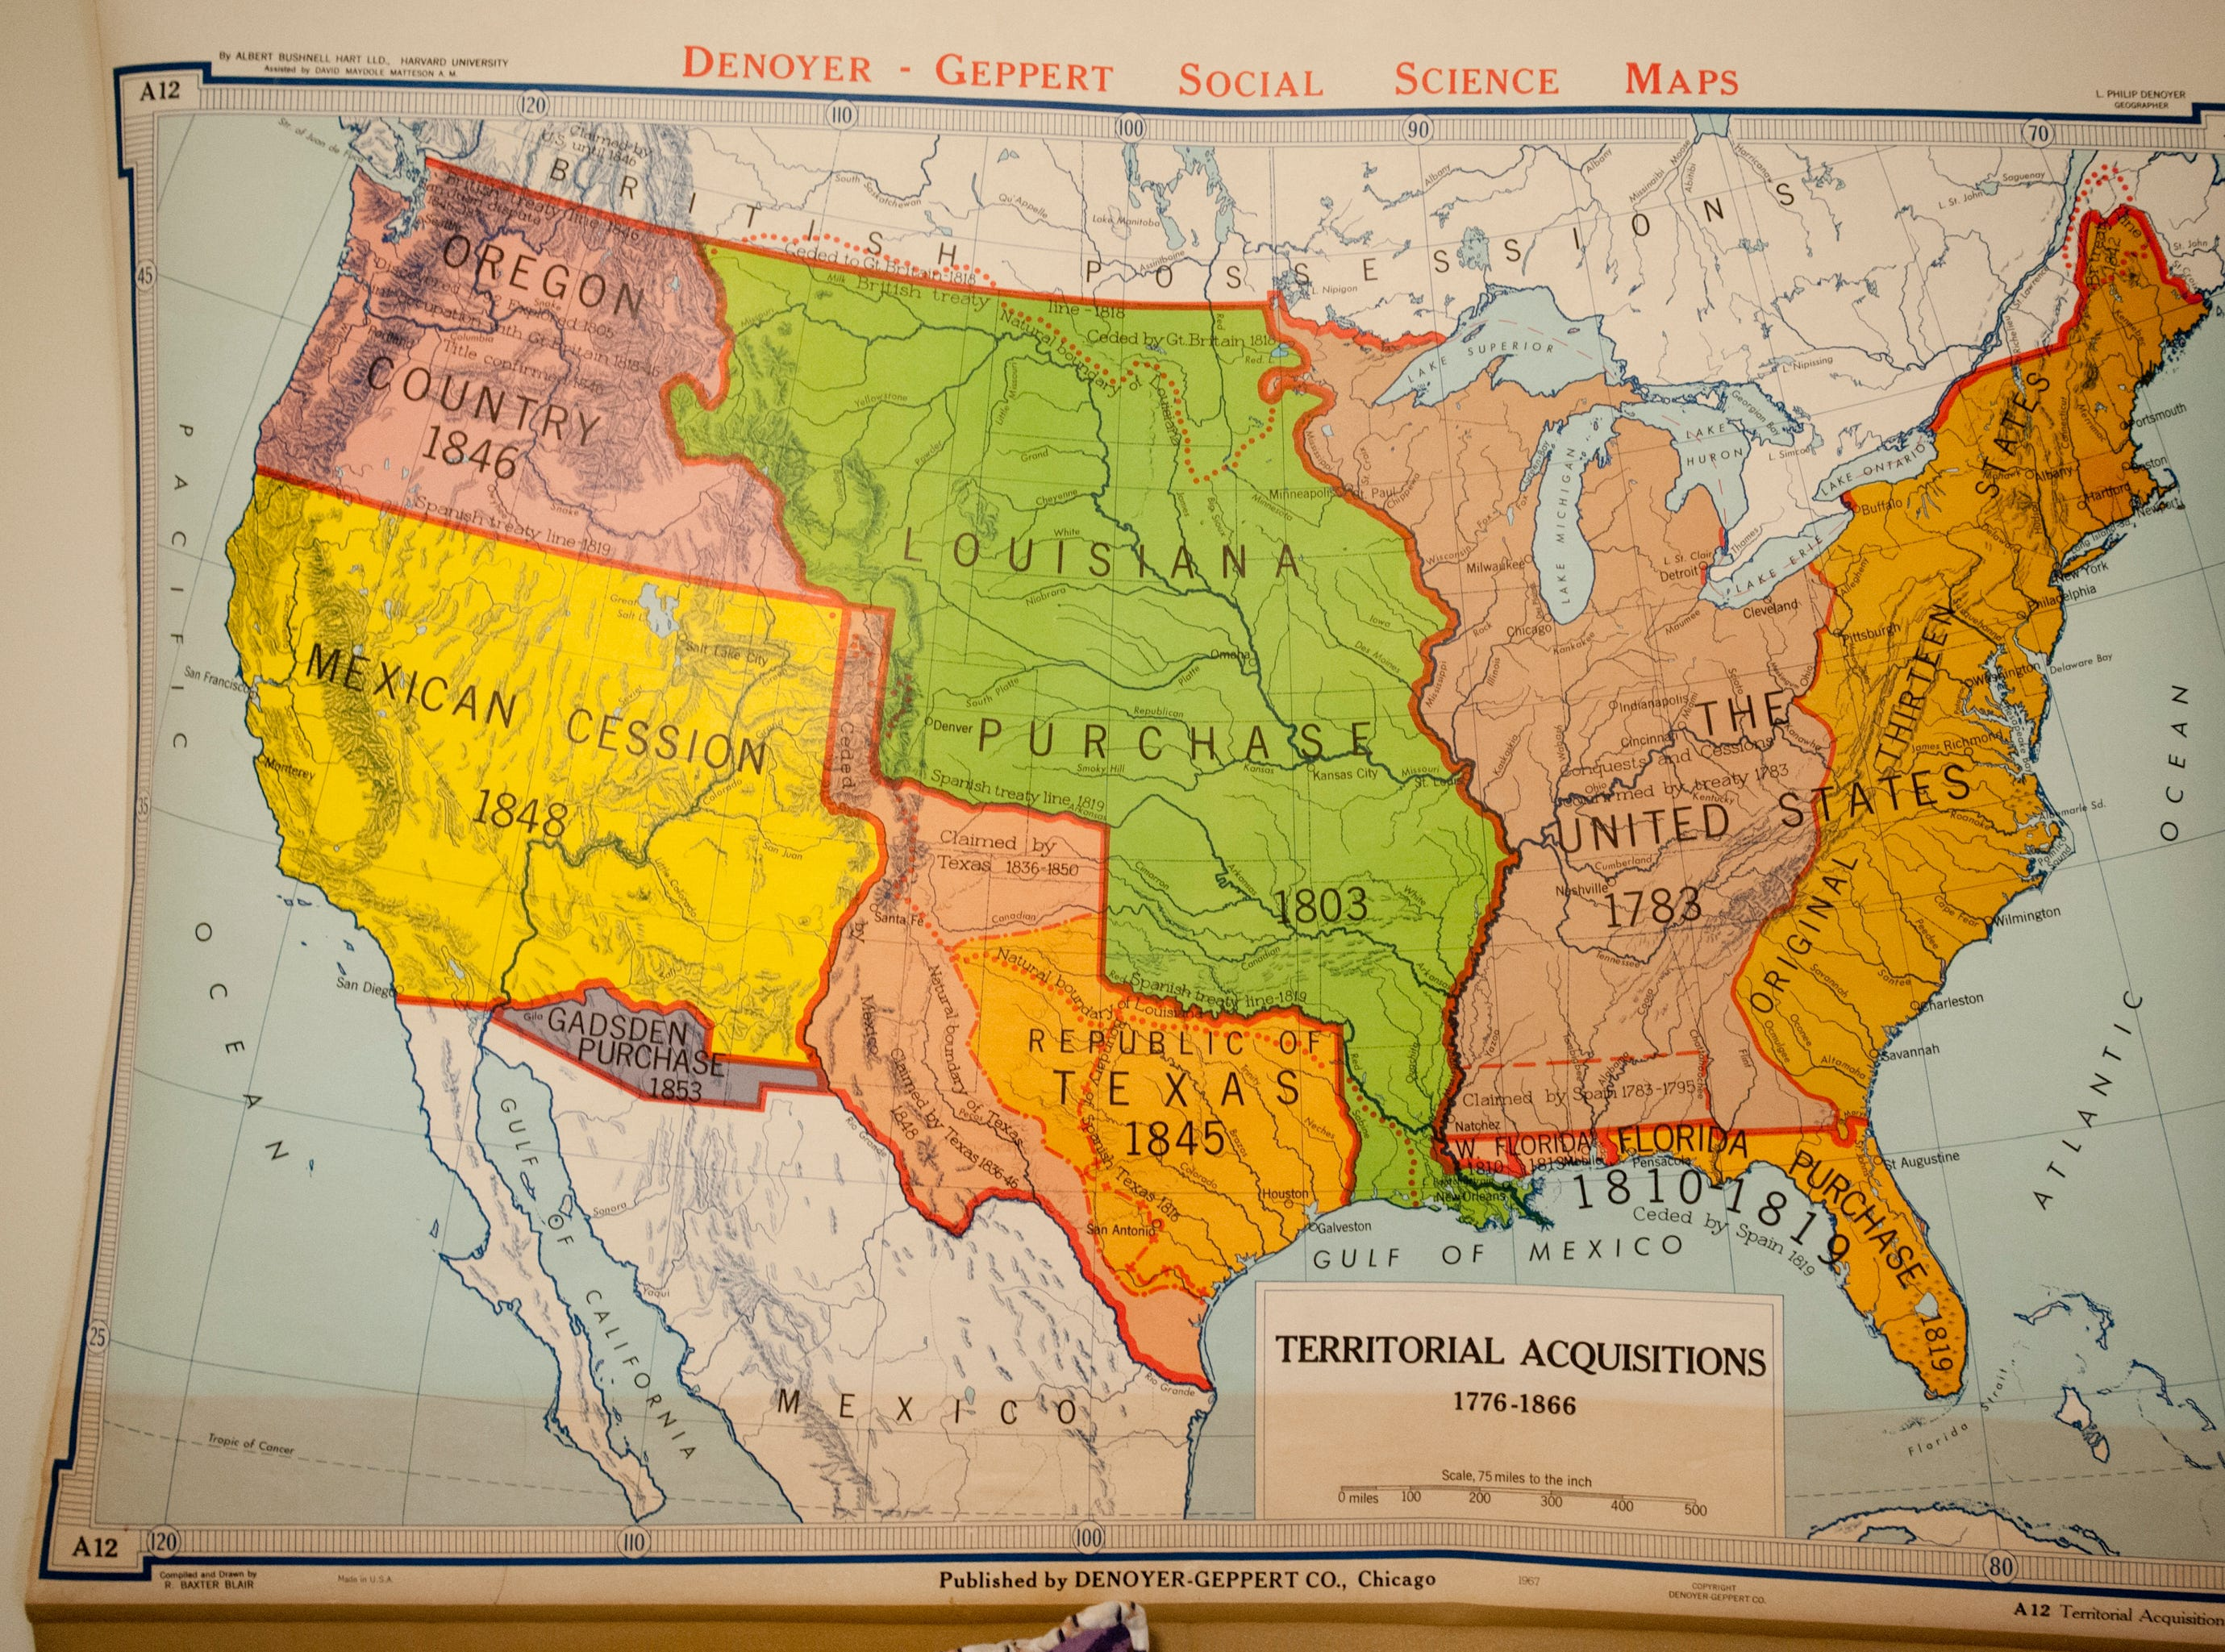 The wall of Lennox' bedroom is decorated with this Denoyer-Geppert Social Sciene school map of the United States which shows the territorial acquisitions of the country from 1776 to 1866. The map came from a client of Squires after a renovation.